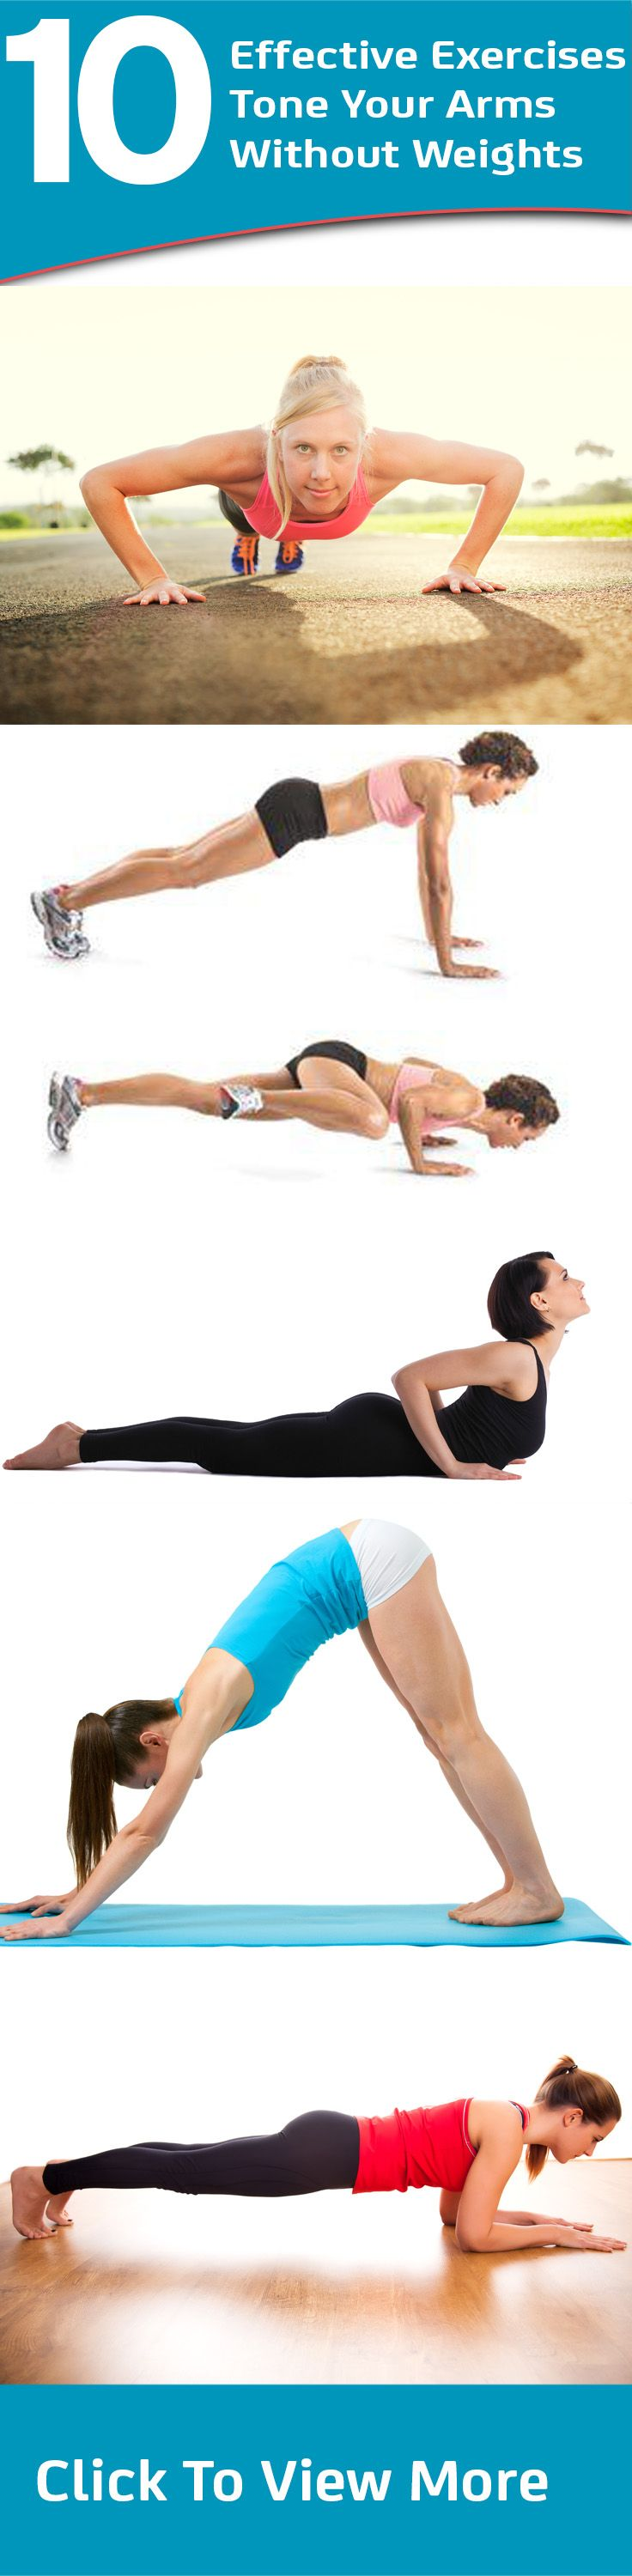 Here are given top 10 exercises that will sculpt those bingo wings into oh-so-sexy hot guns. All you need is your mat and YOU